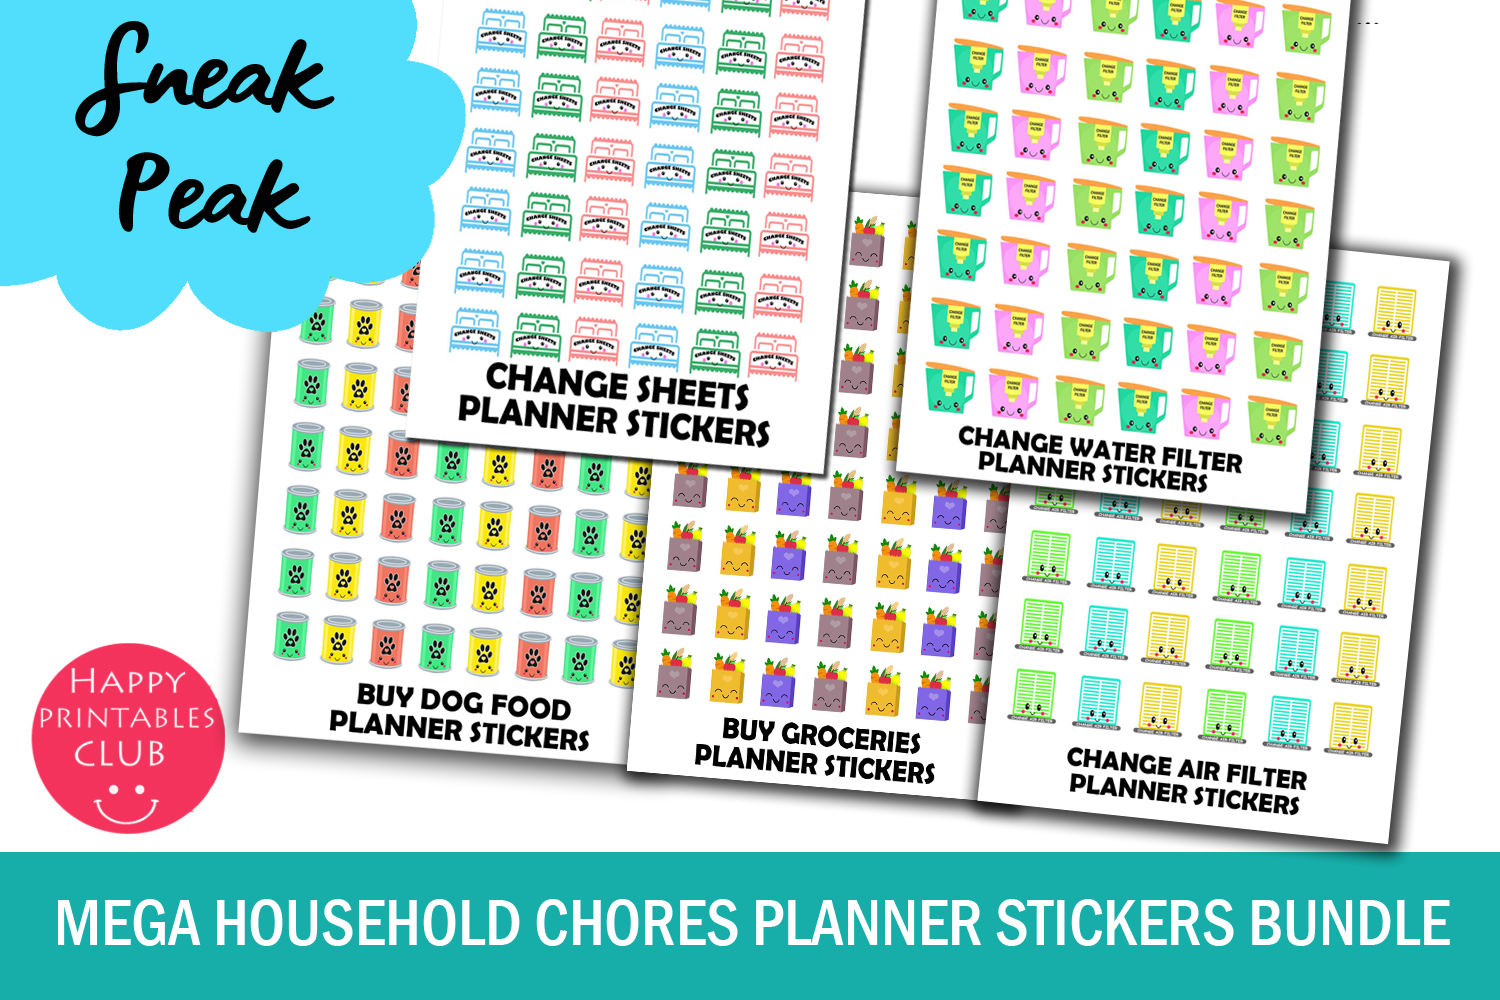 mega household chores planner stickers bundle pack